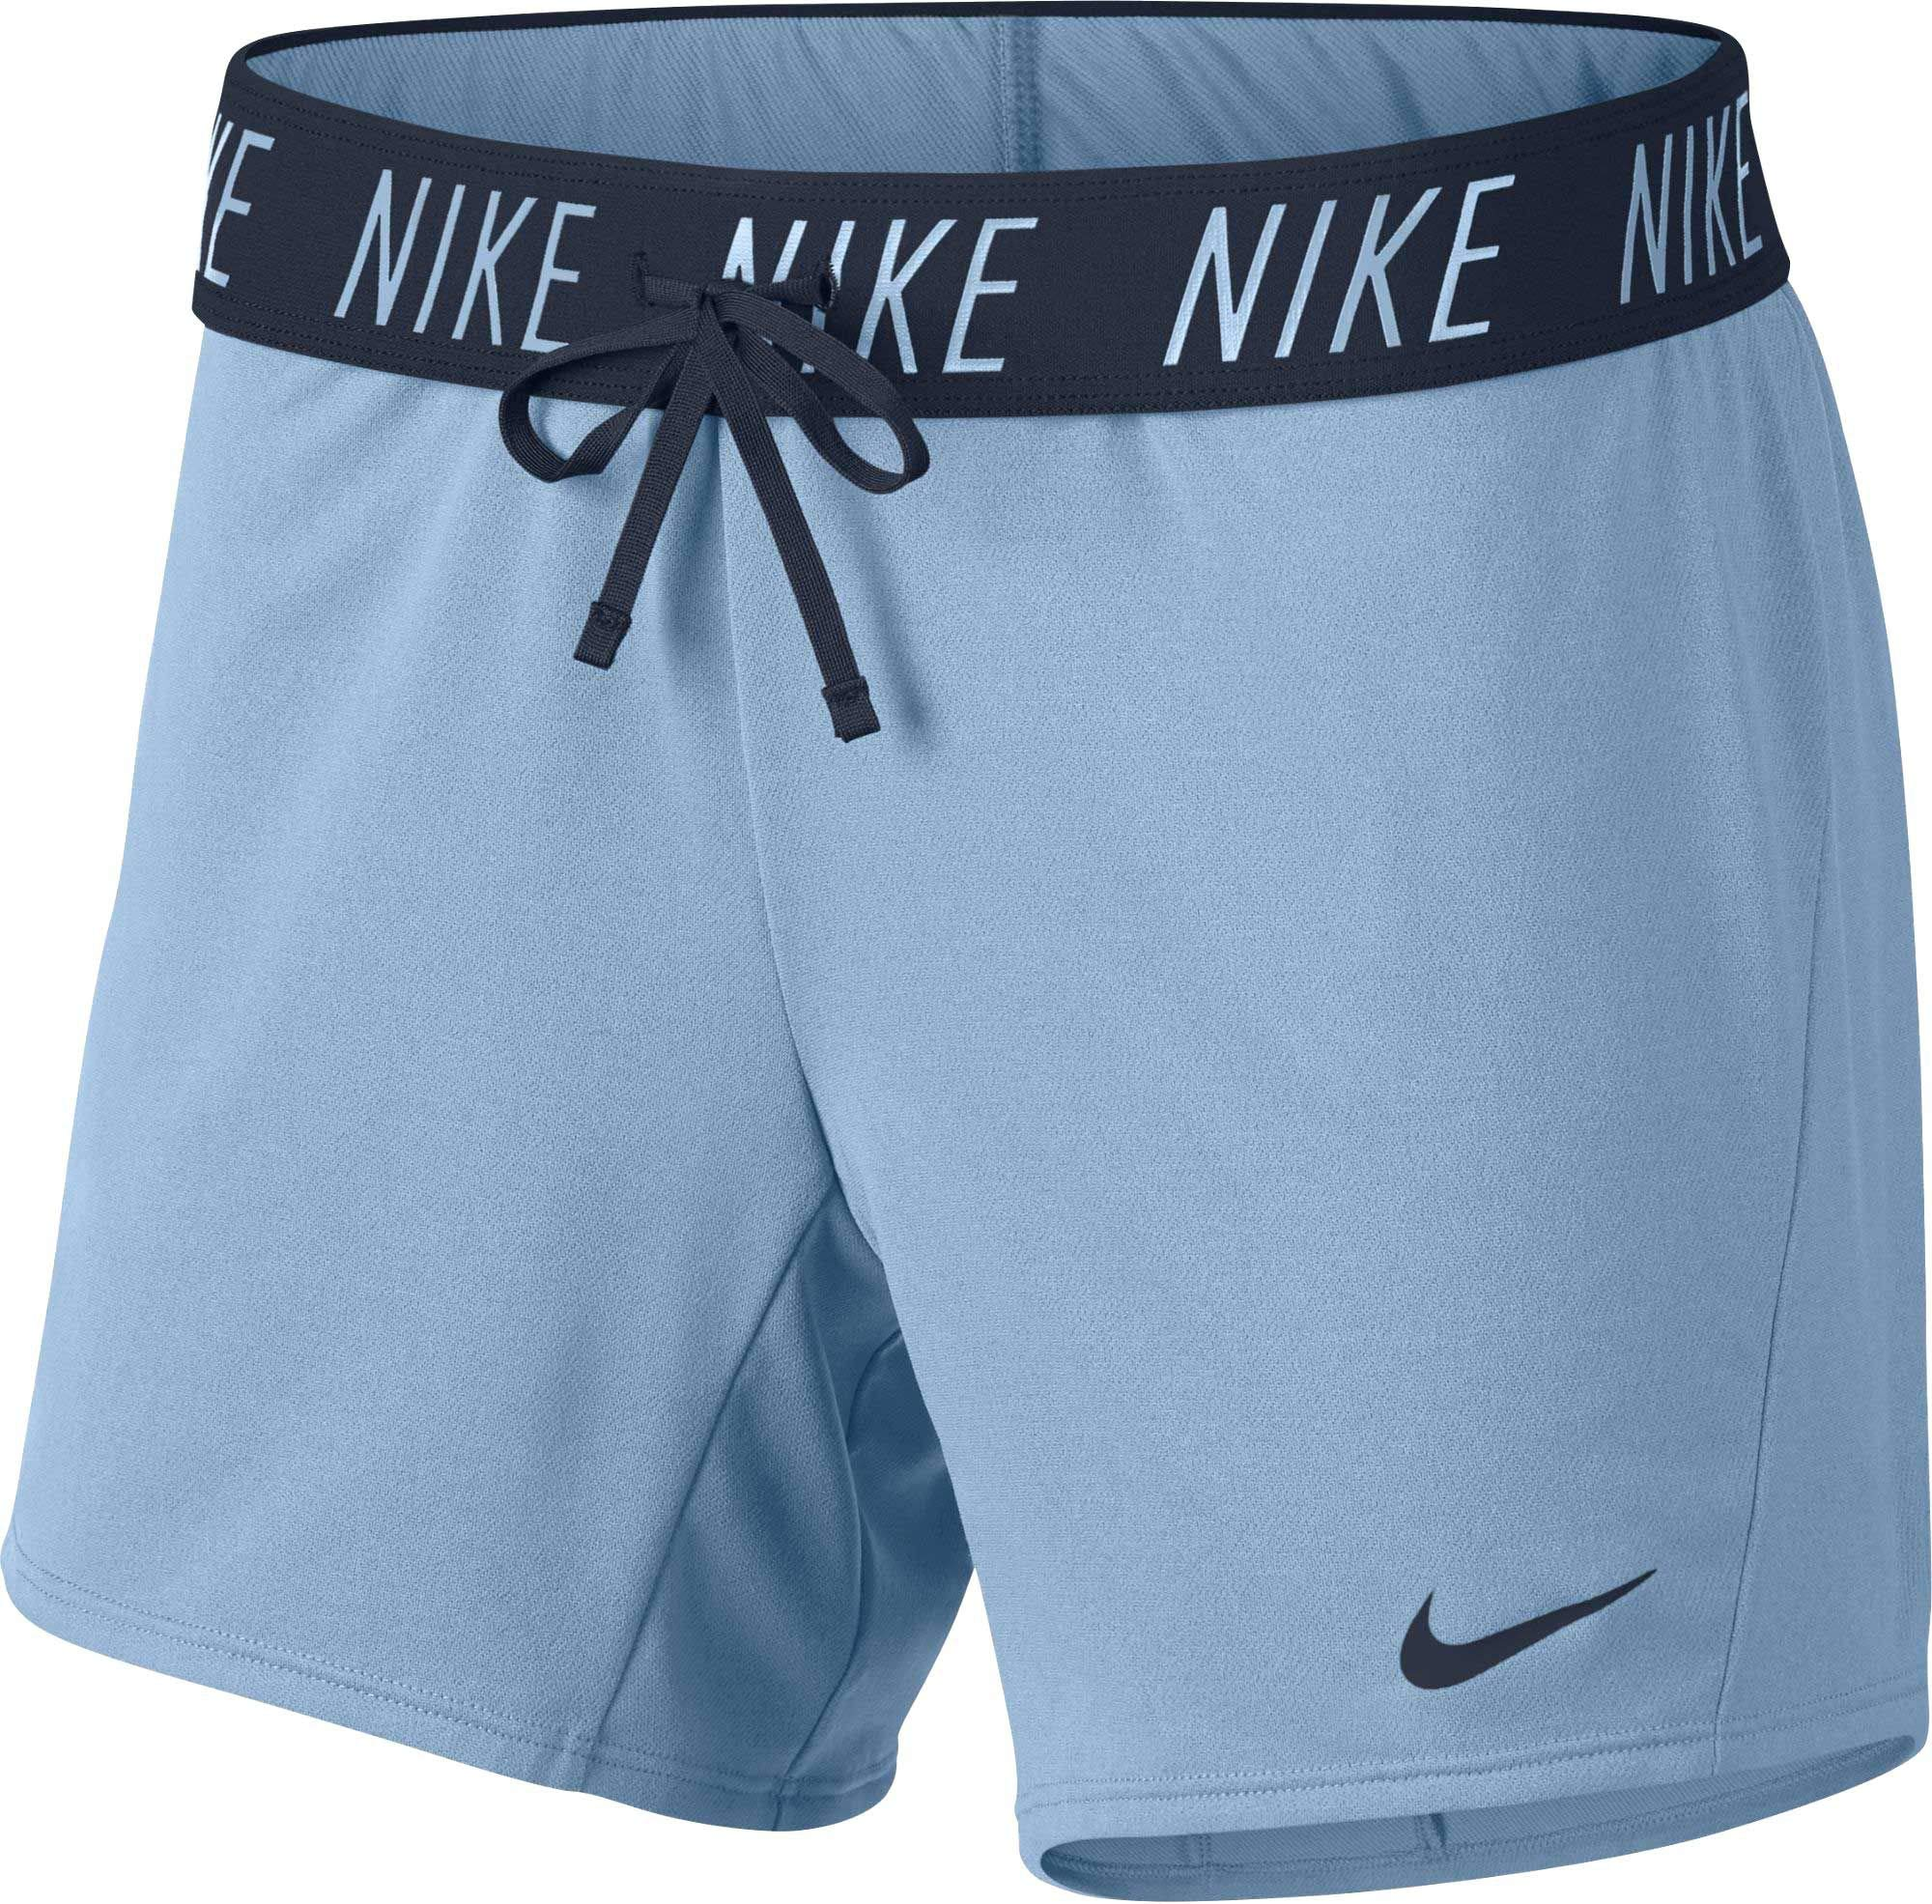 NIKE Women's 5'' Dri-FIT Attack Training Shorts,(Cobalt Tint/Obsidian,X-Large) by Nike